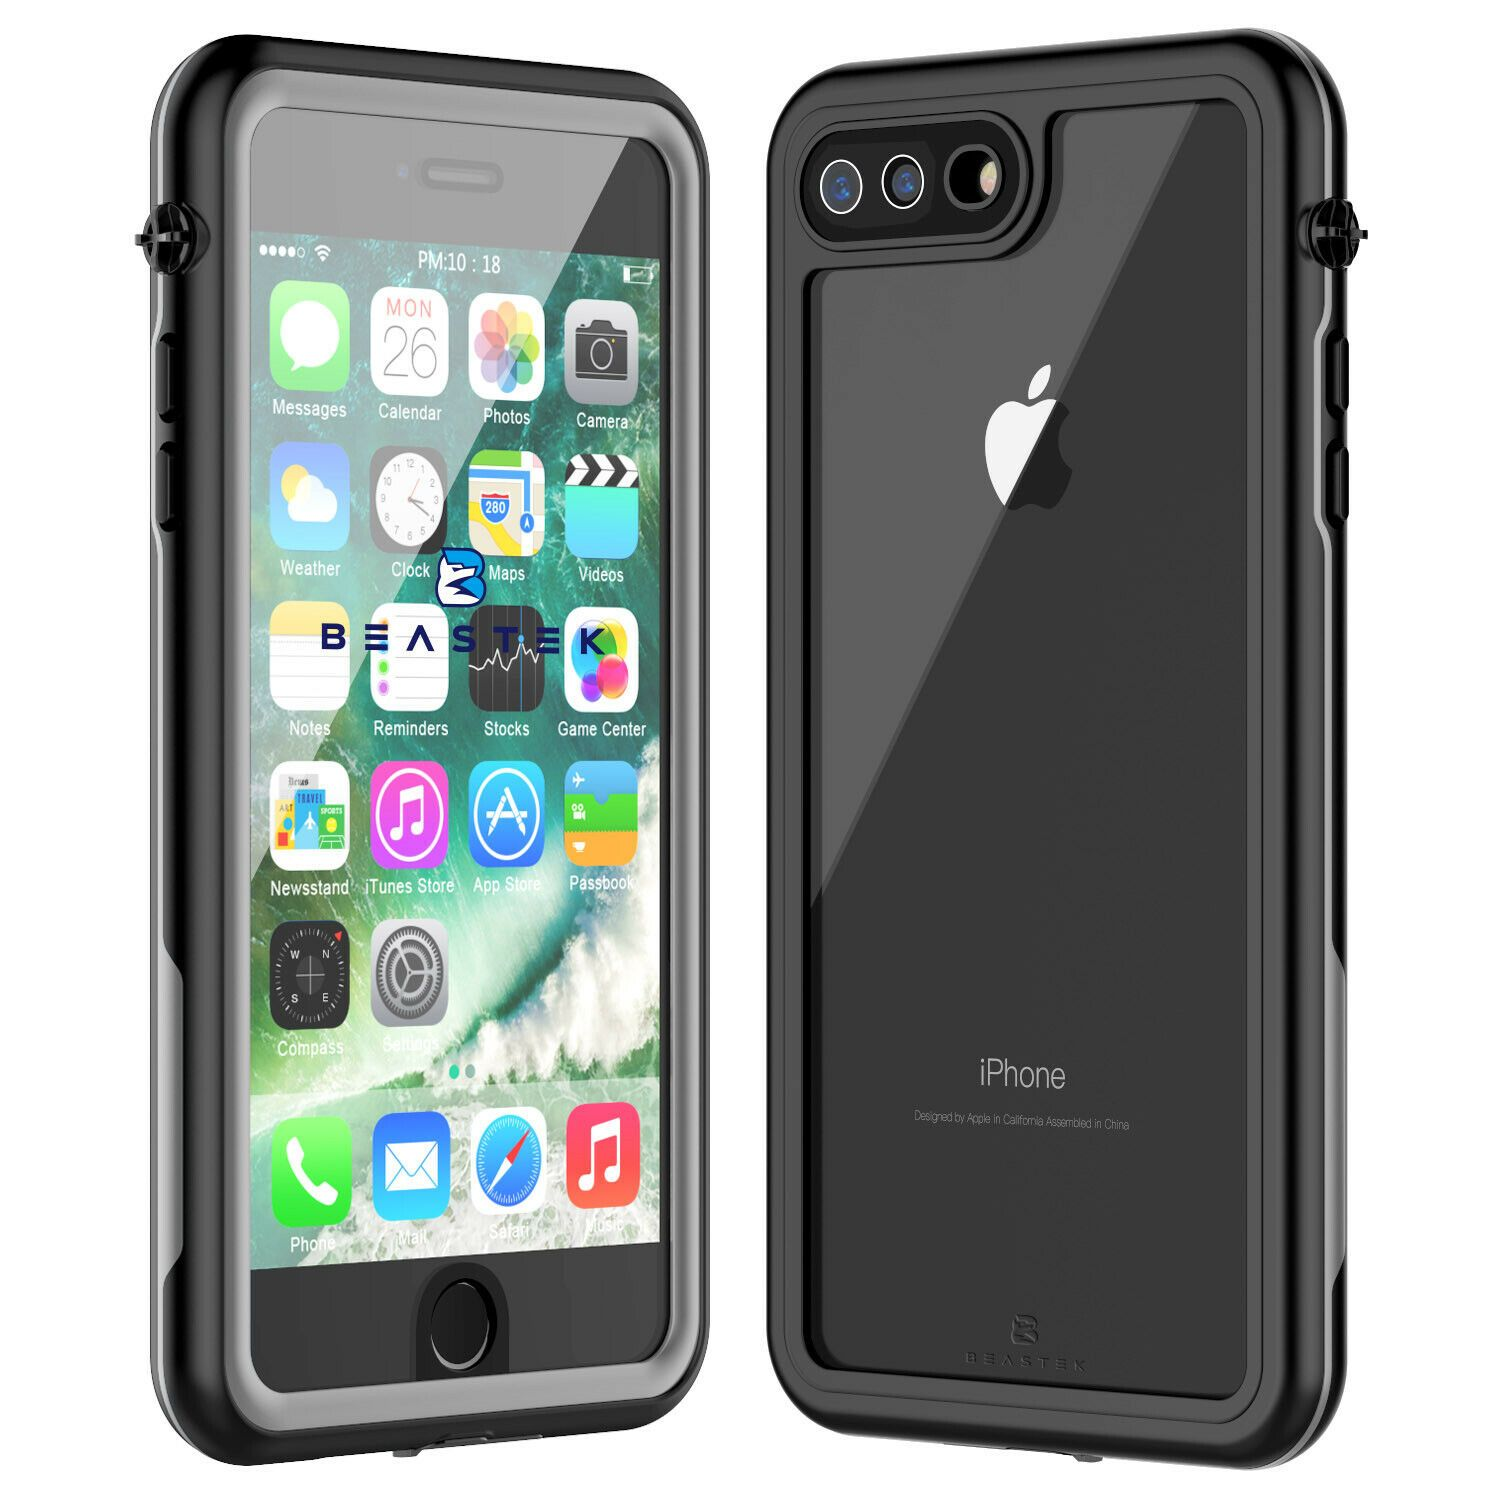 Waterproof Case For Apple Iphone 7 8 Plus Defender Shockproof Series Cover Click The Picture For More New 2020 Products Trends Phone Case Amazon Ebay 2020